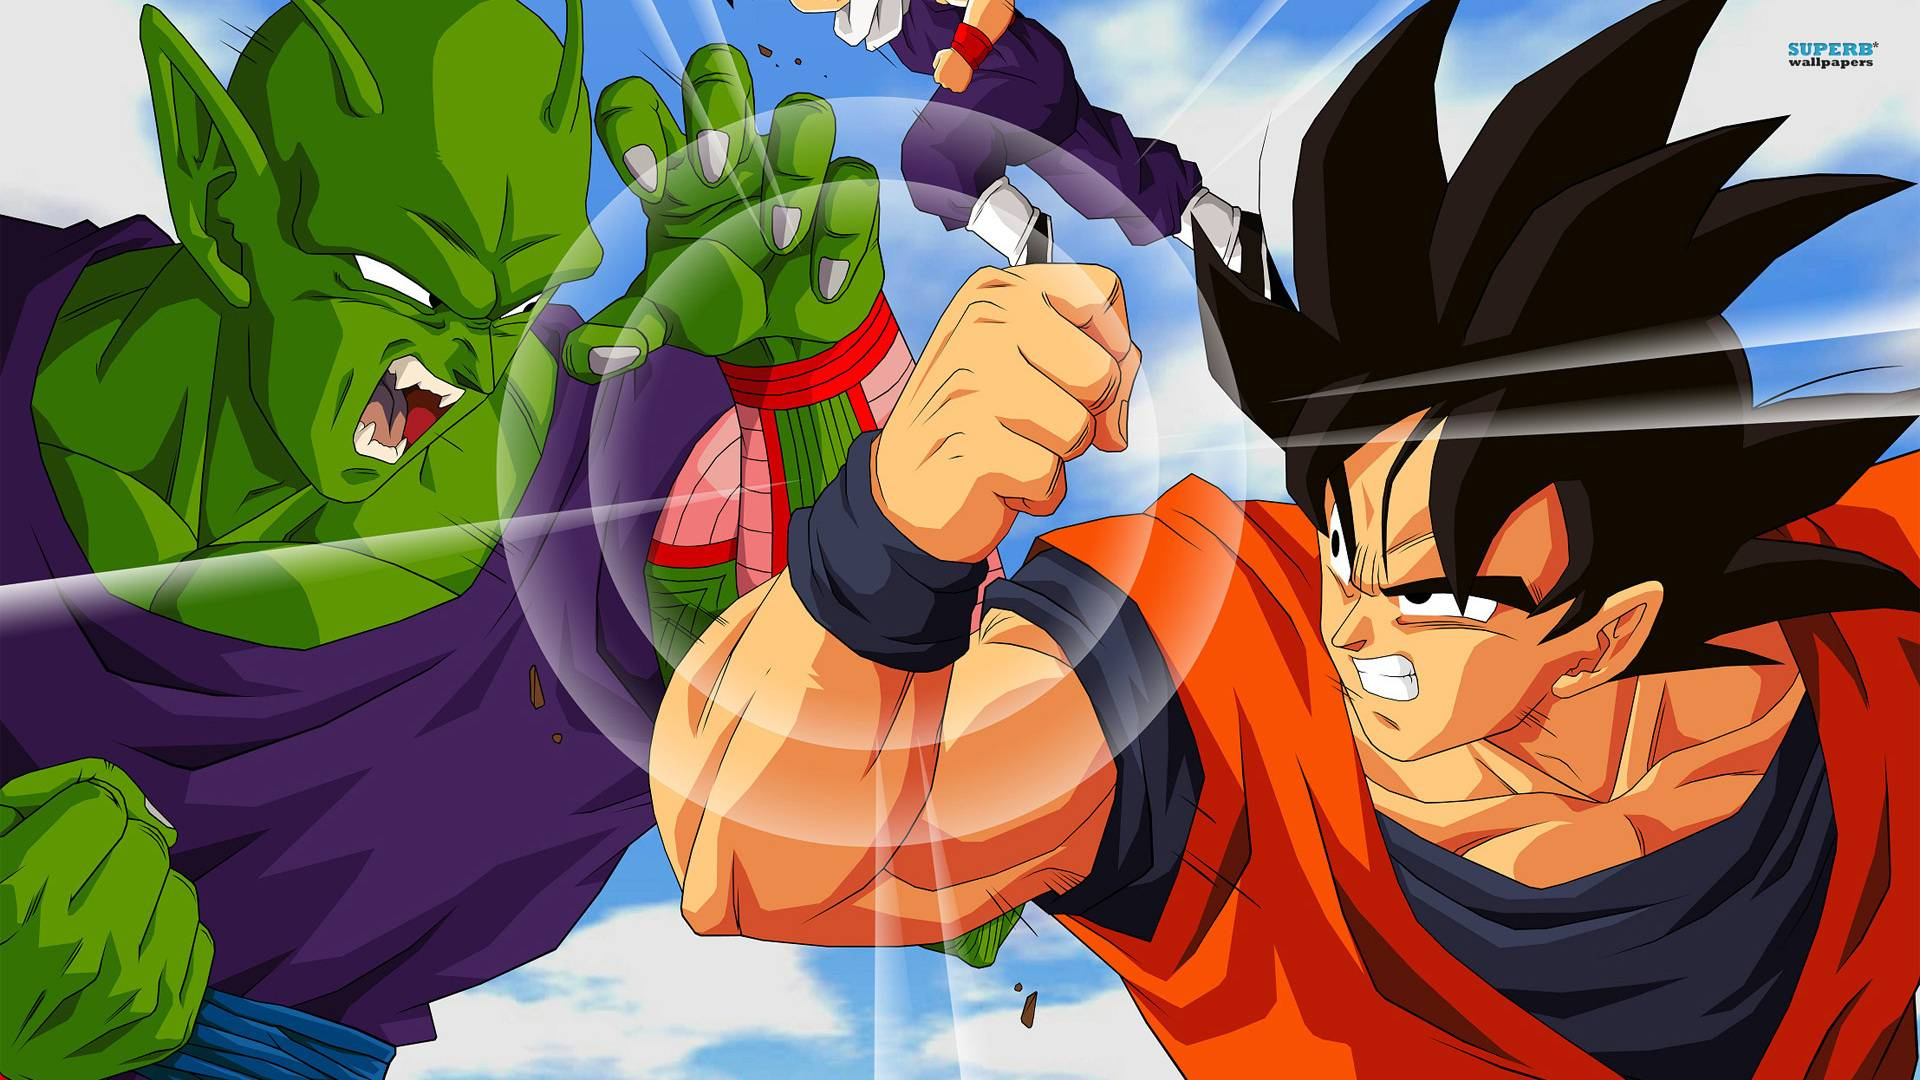 Goku vs Piccolo Goku vs Piccolo 1920x1080